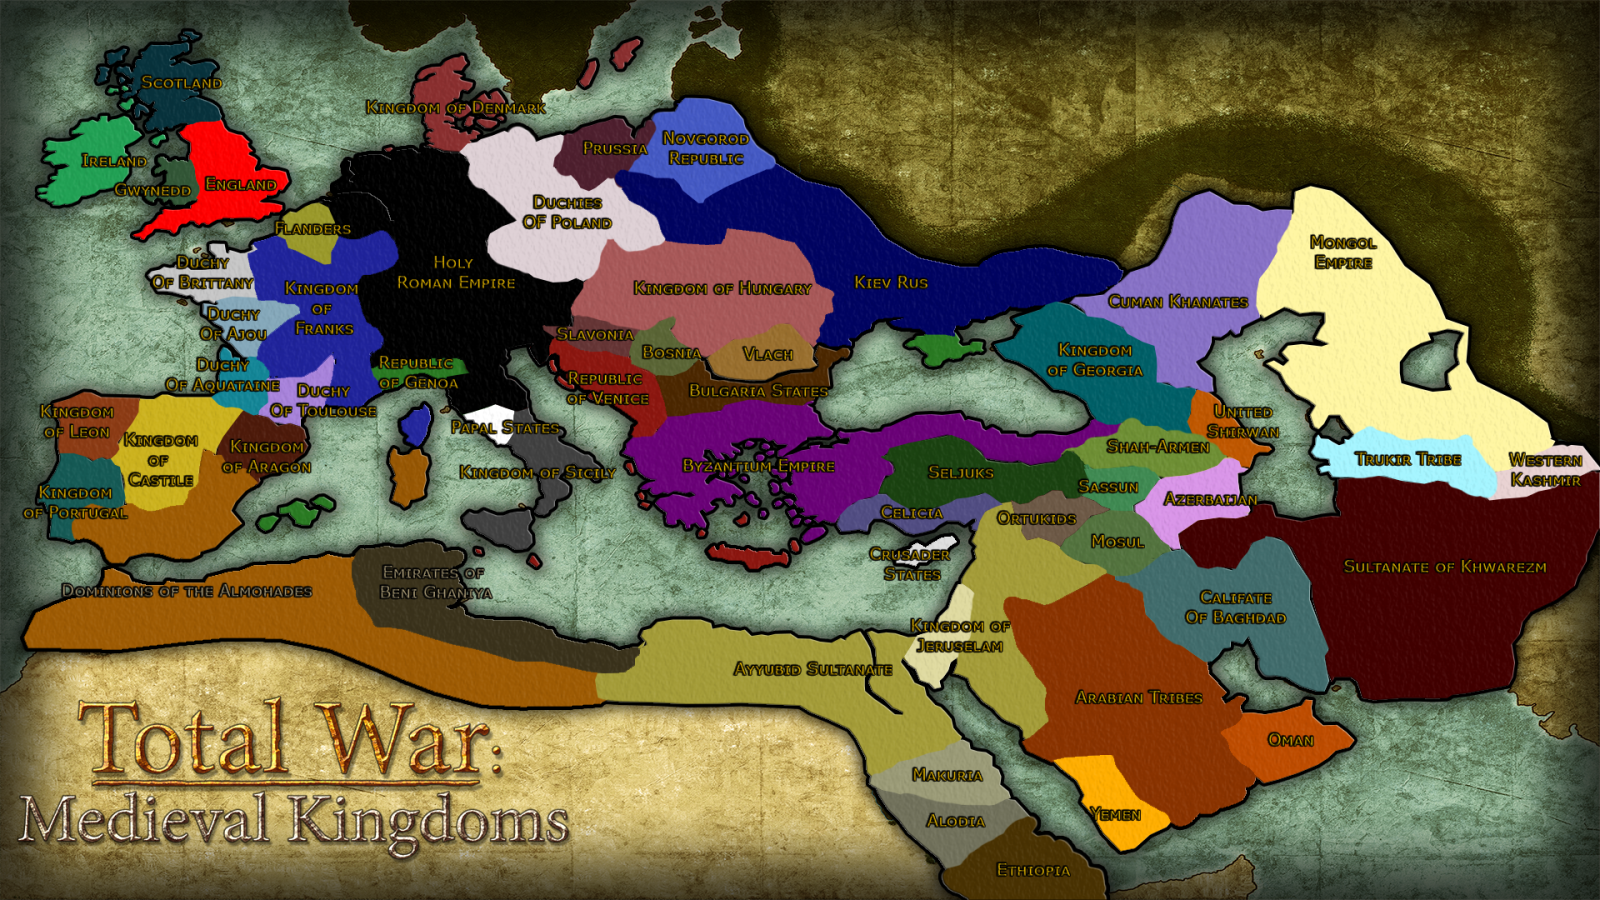 Best Total War Games List for Windows, MAC or Linux OS